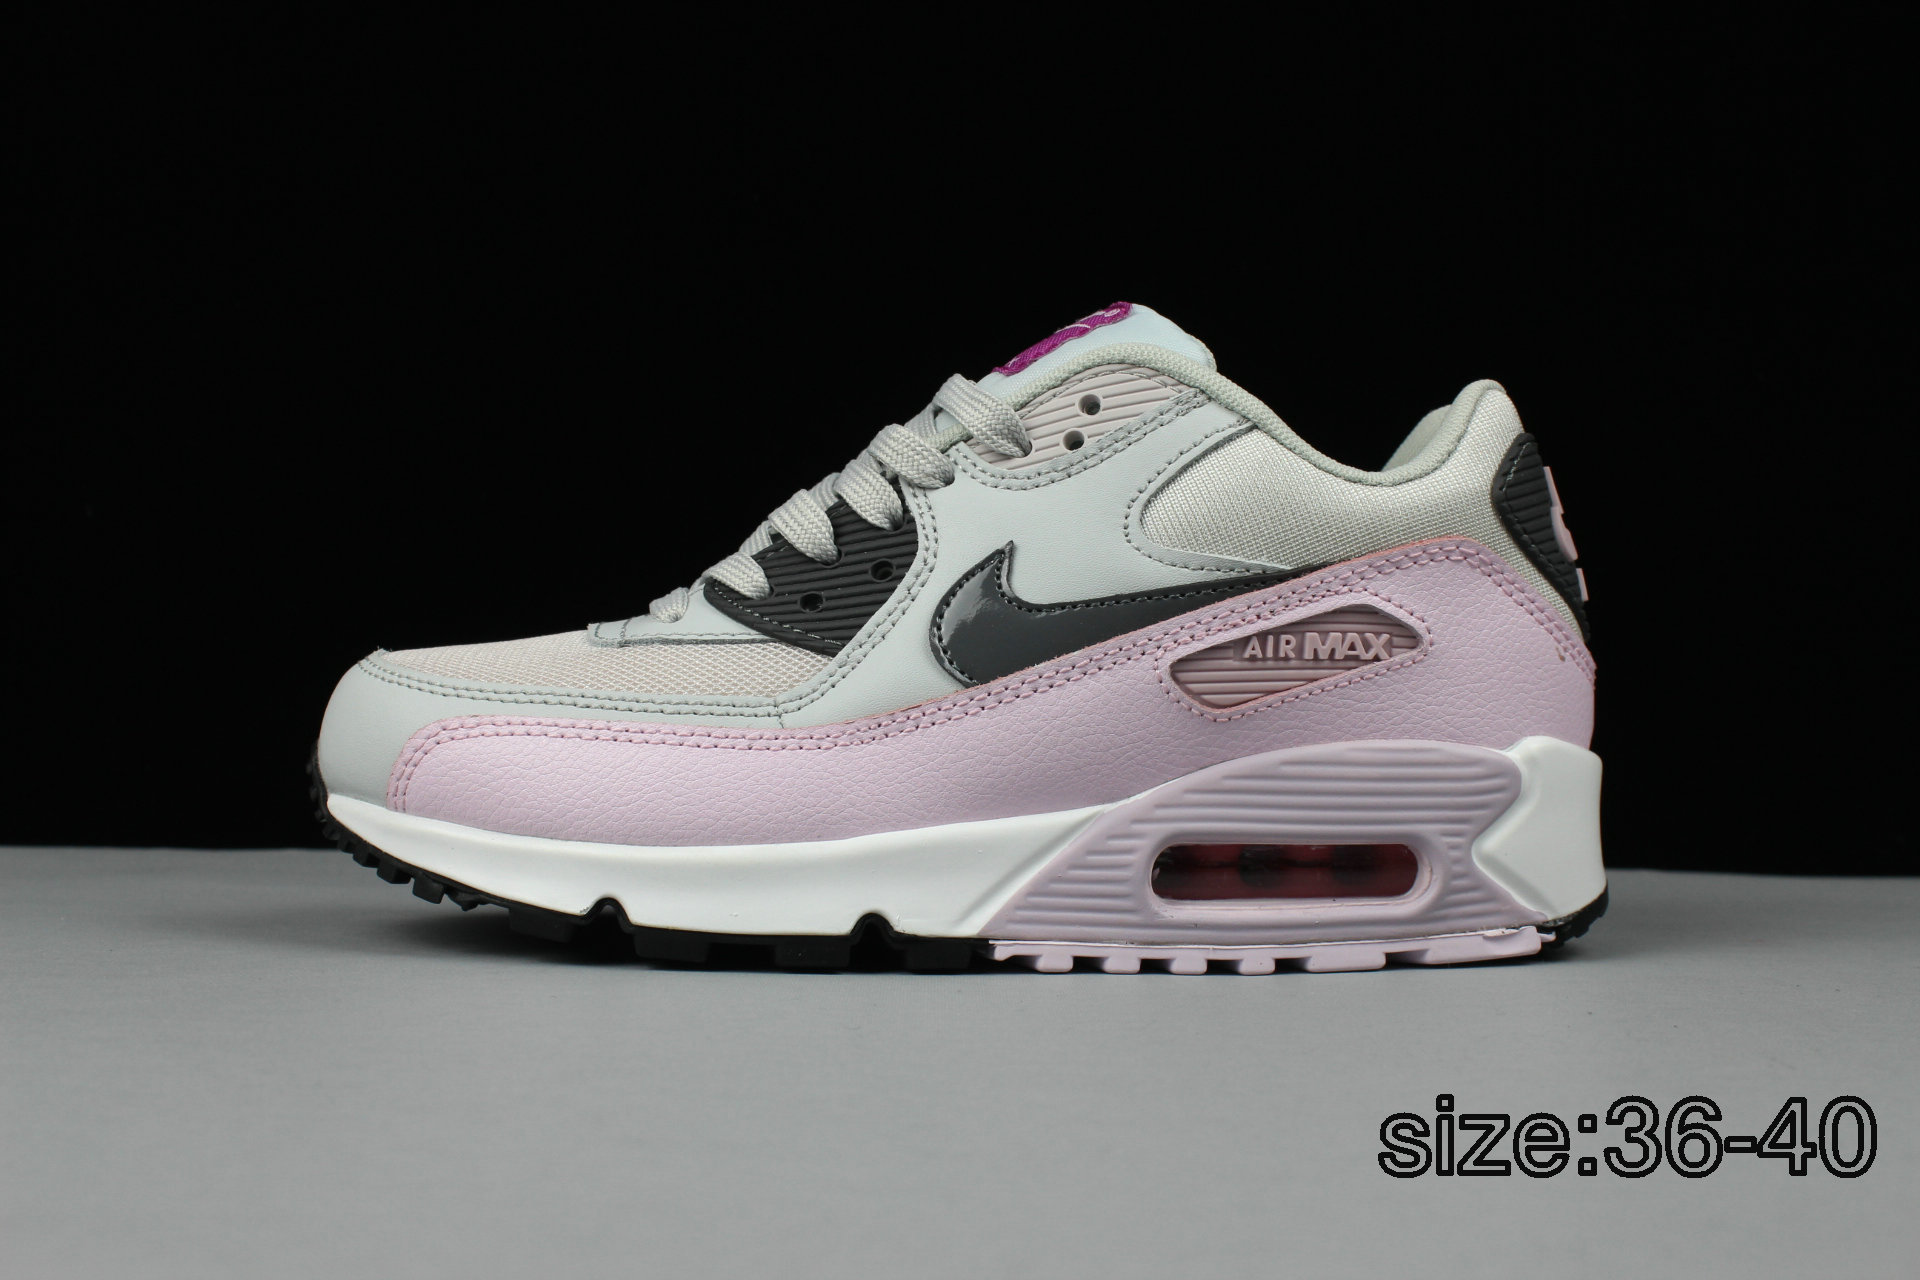 NIKE AIR MAX 90 PINK WHITE GREY (end 1 26 2021 12 00 AM) 29fdfbe95